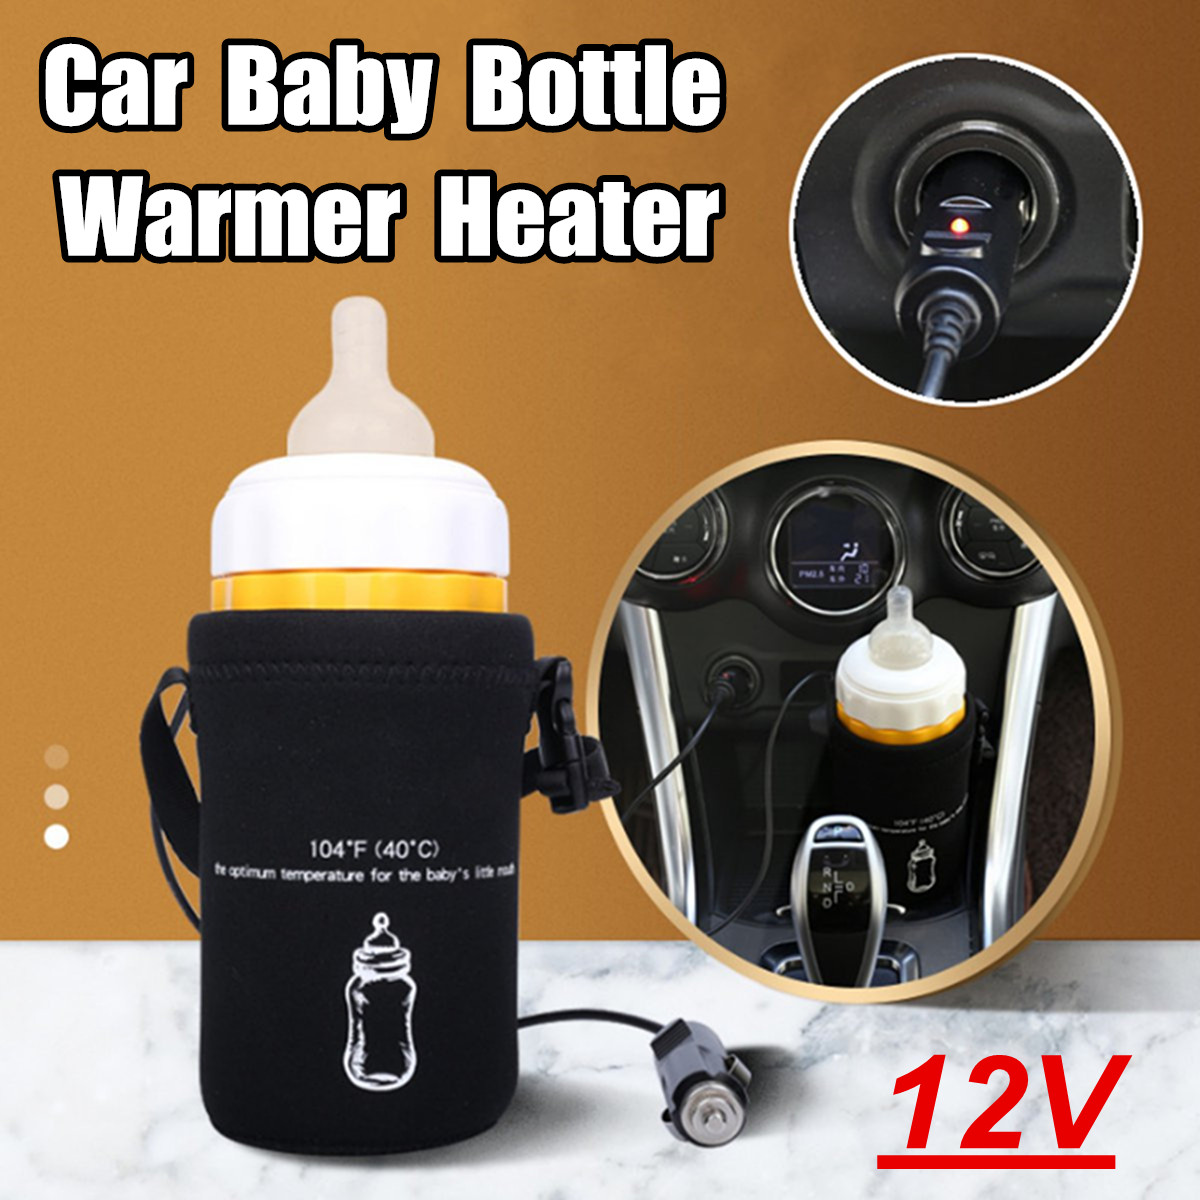 12V 40℃ Car Baby Food Milk Water Drink Cup Bottles Warmer Heater Travel Feeding